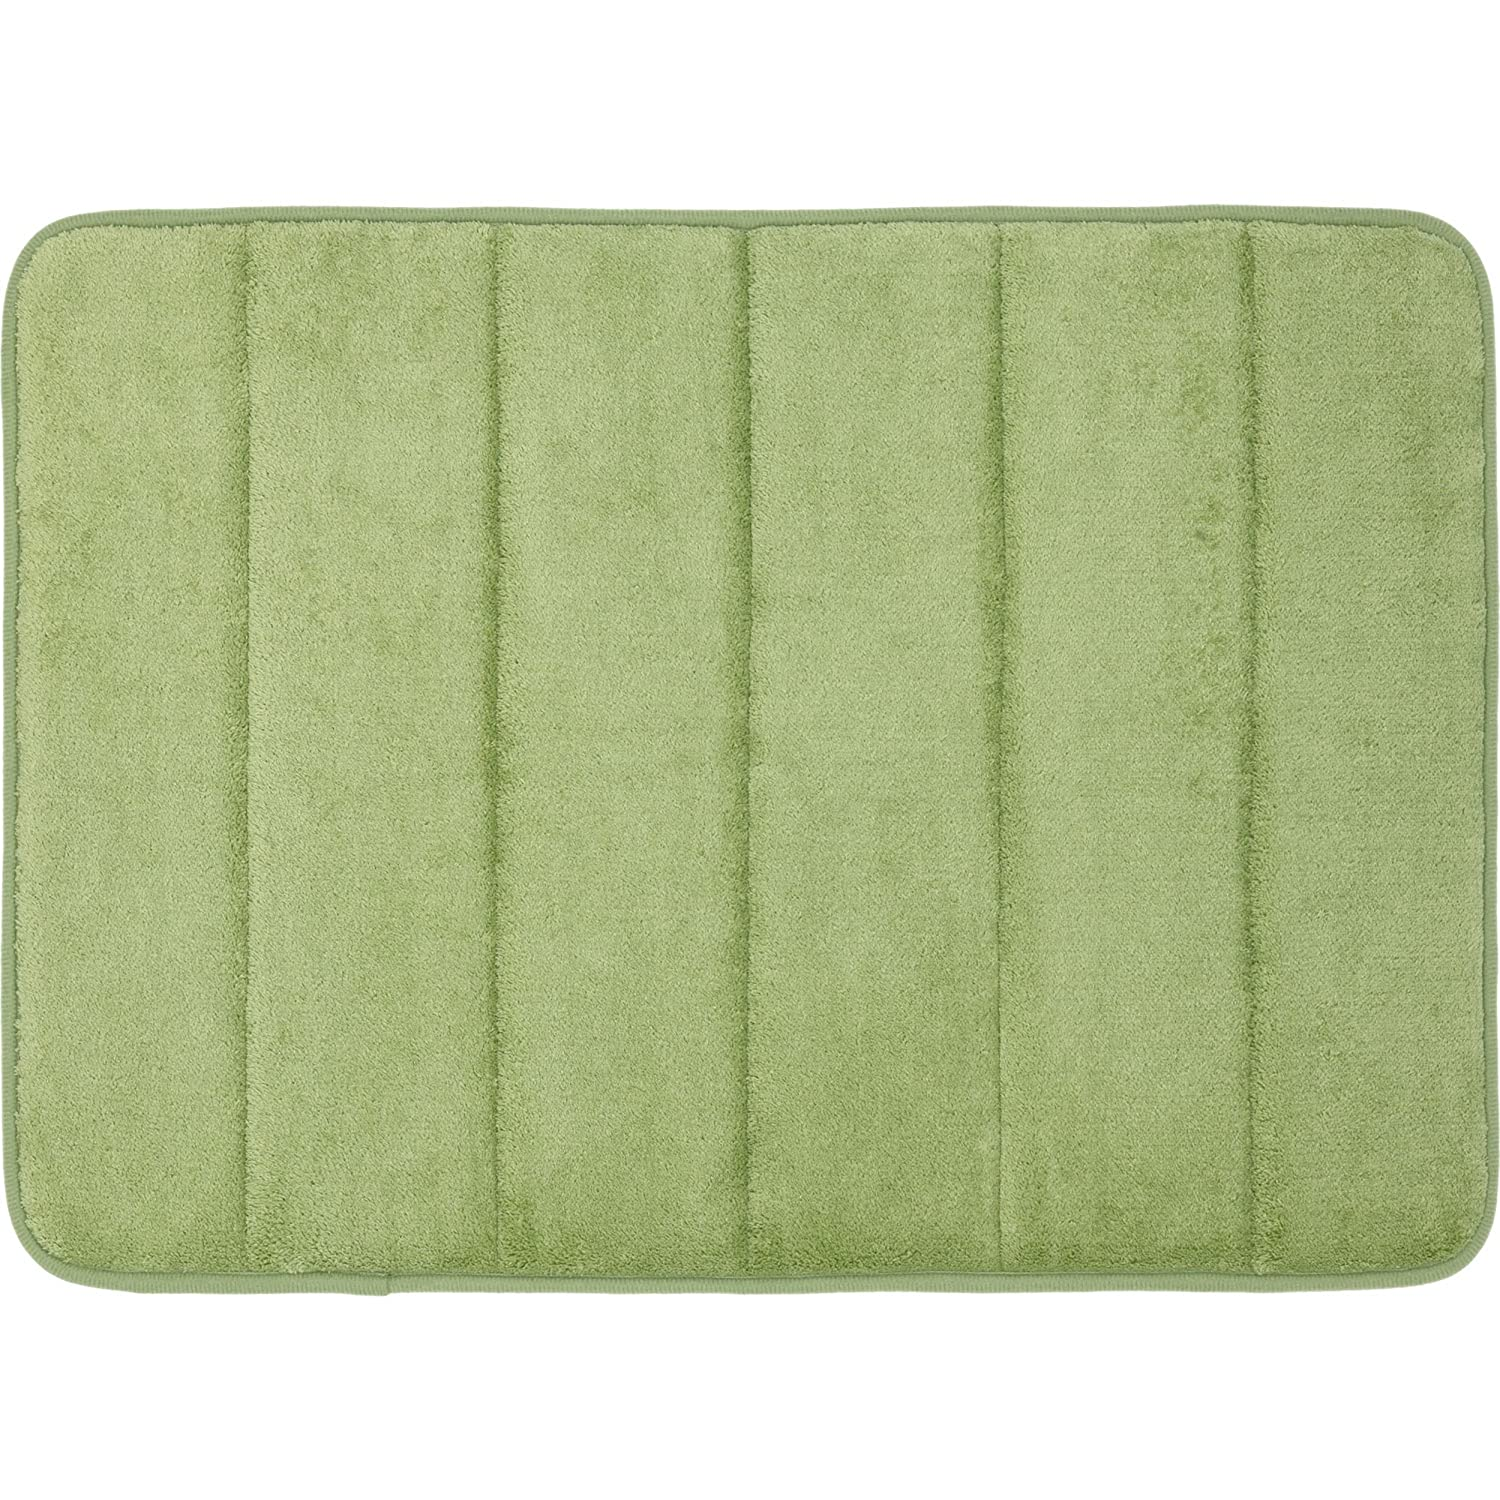 Amazon Mohawk Home Memory Foam Bath Rug 17 Inch by 24 Inch